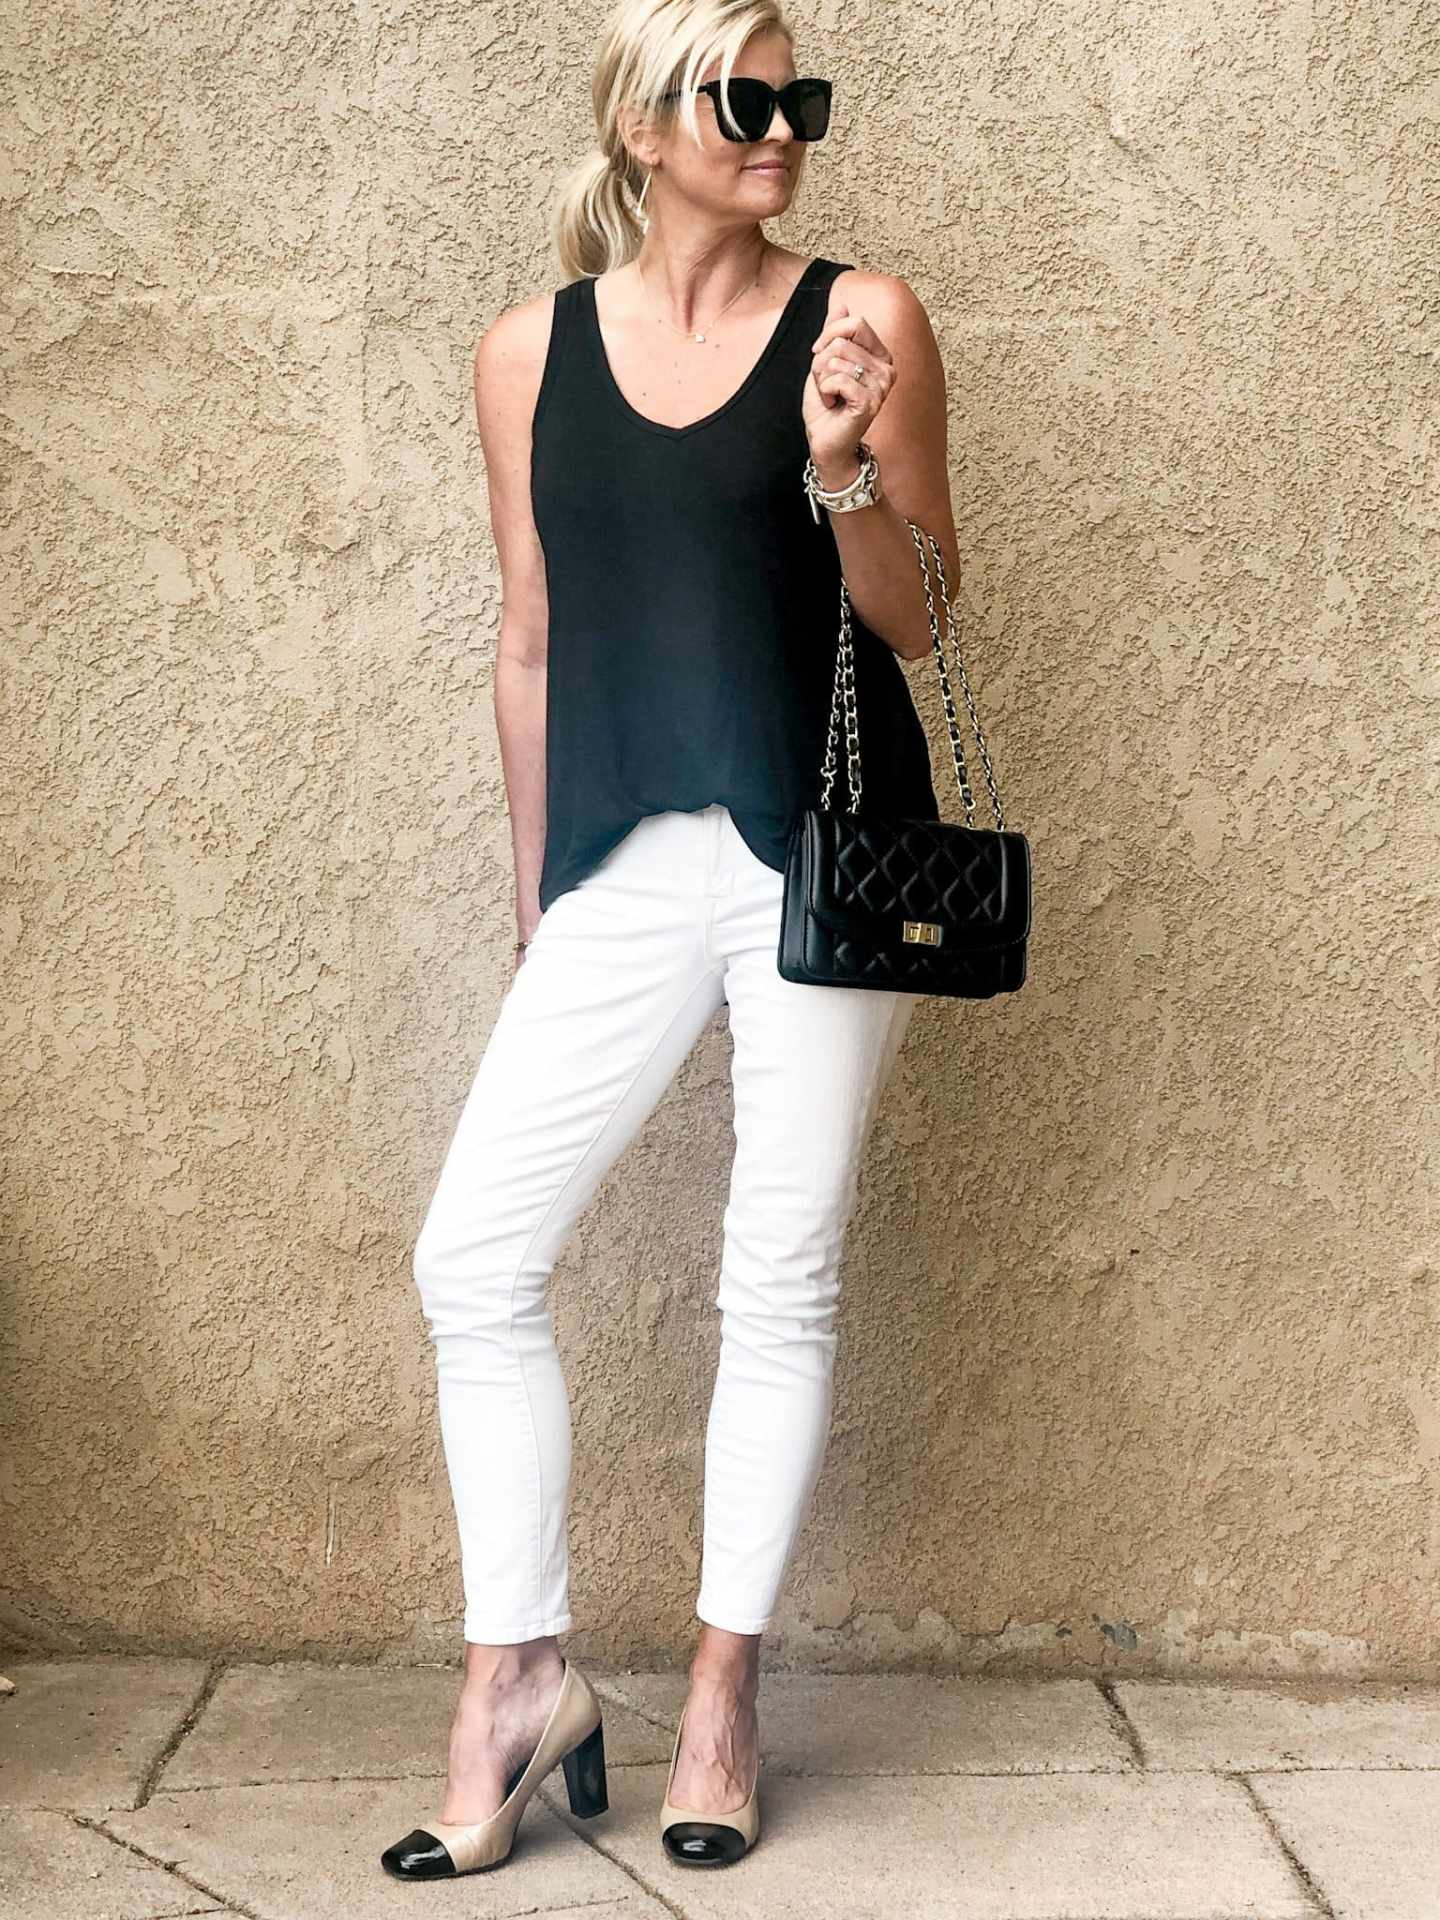 styling white jeans for date night